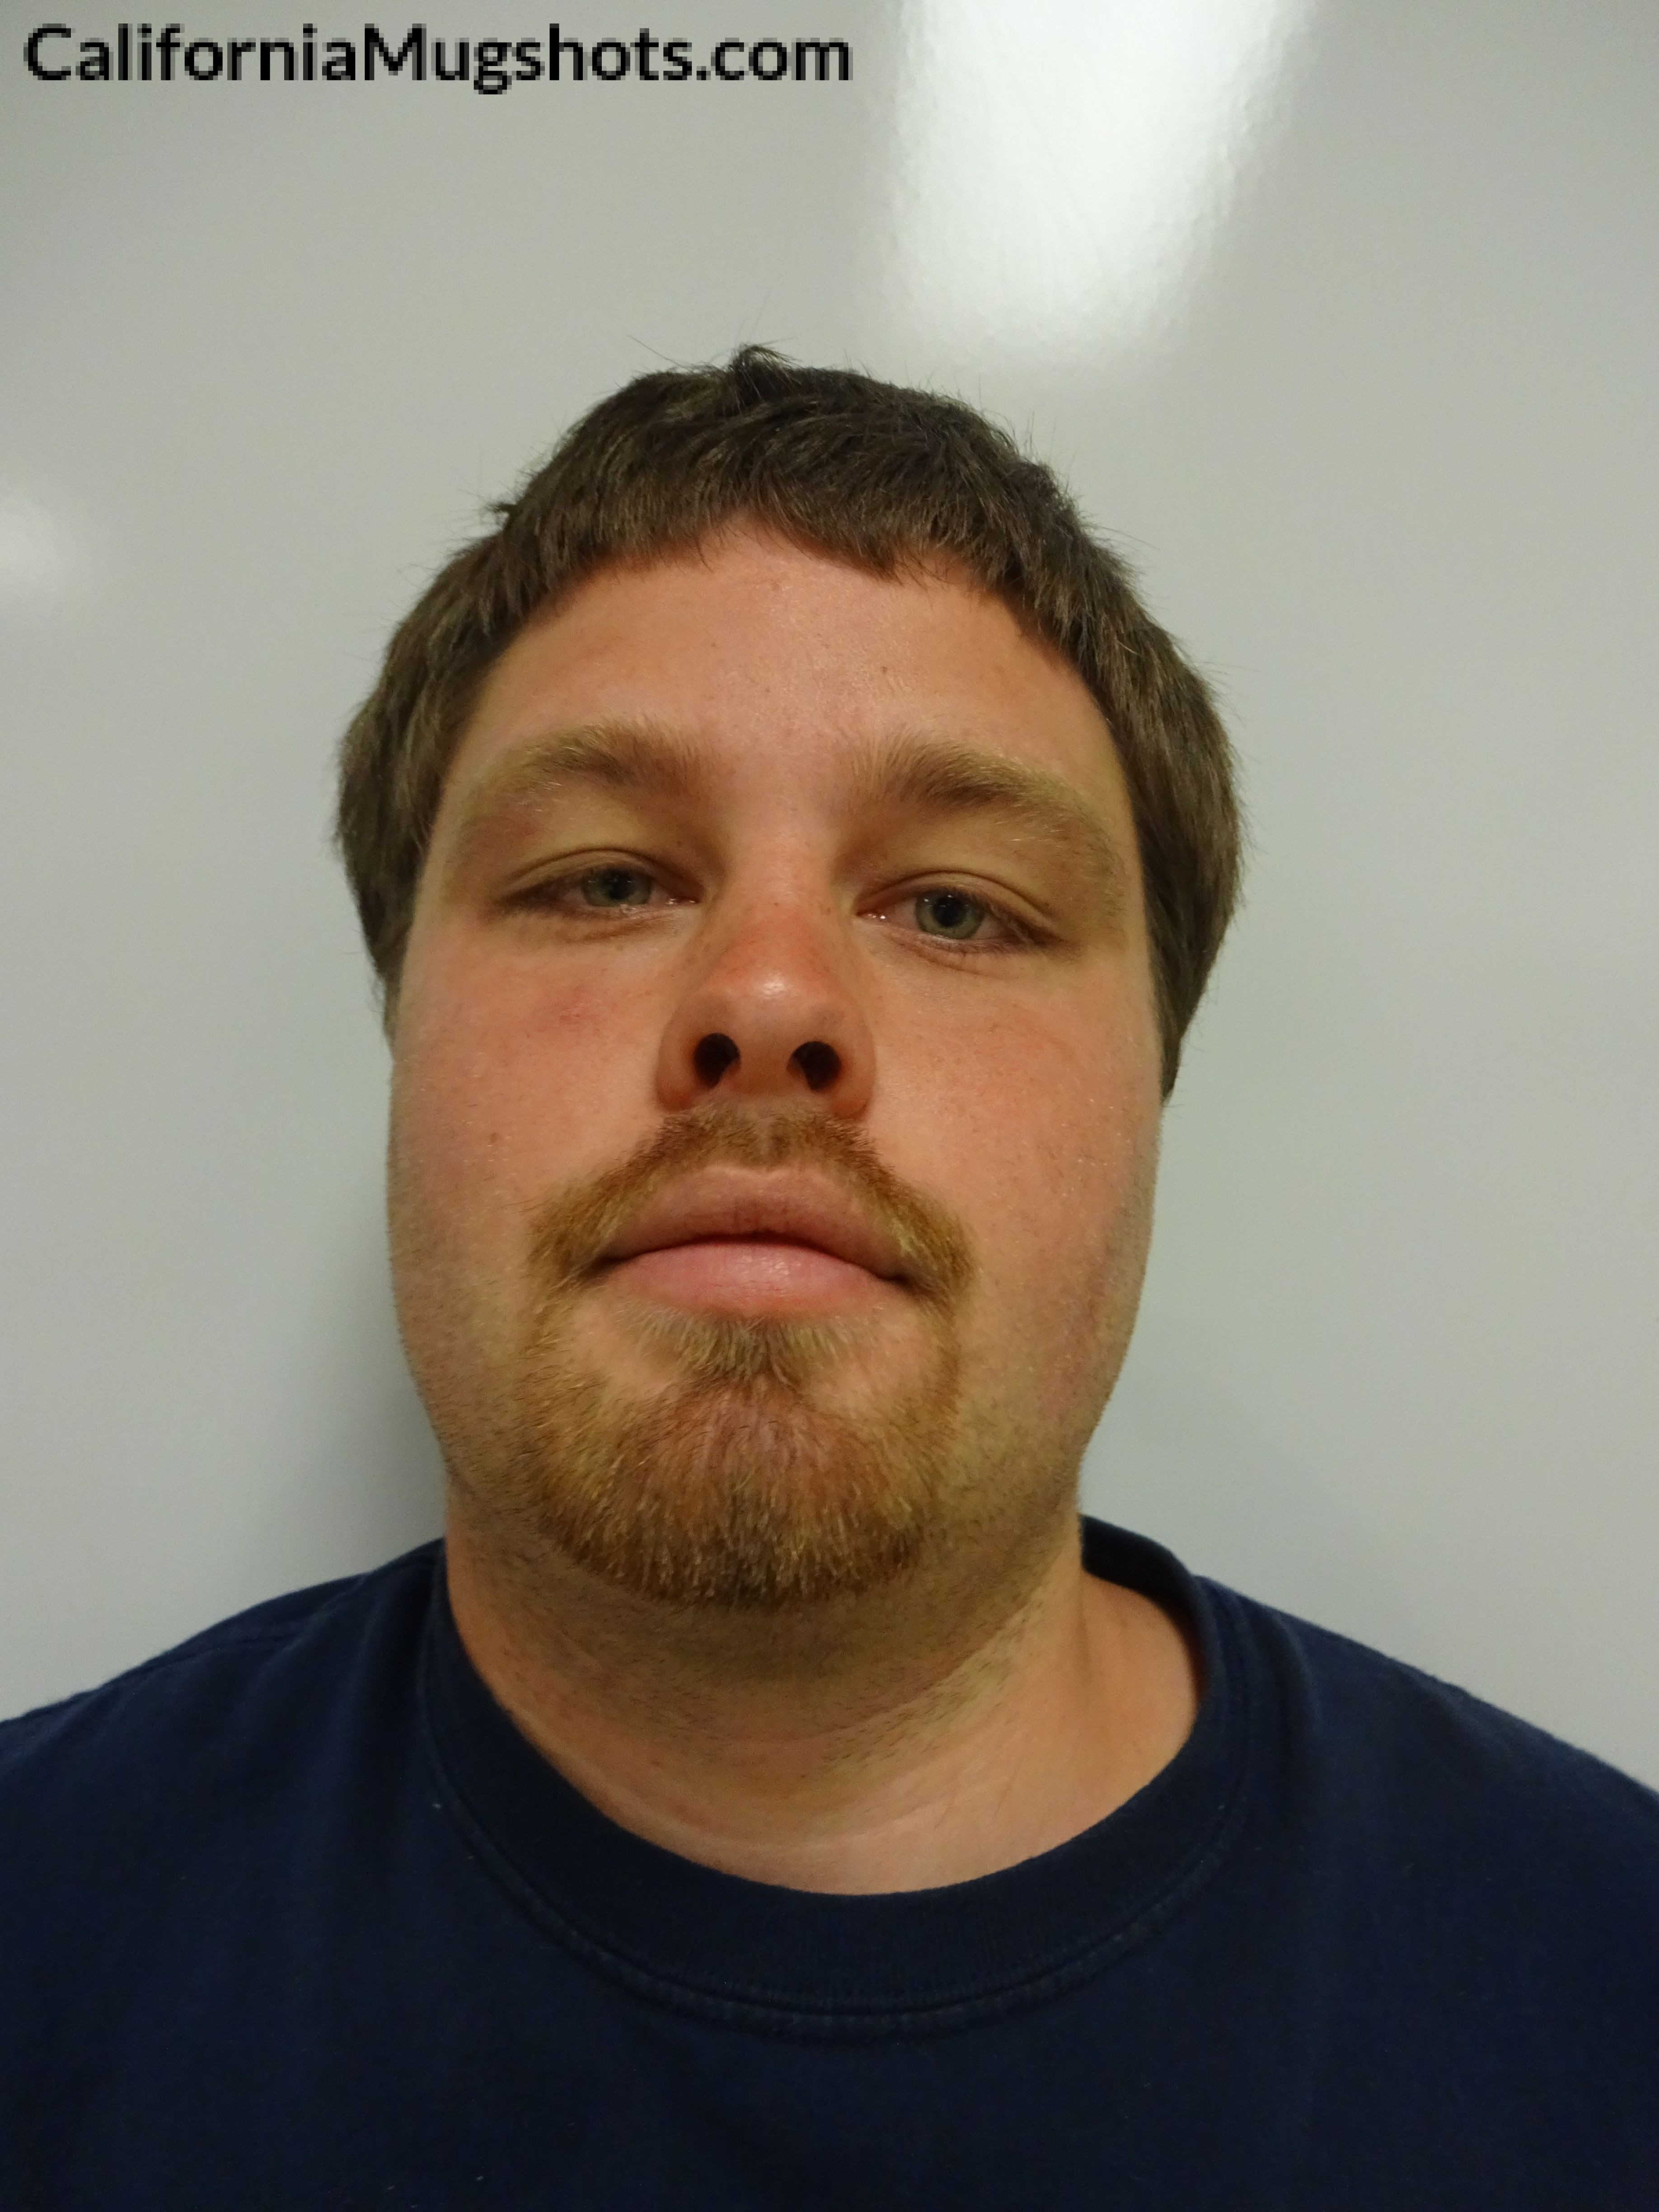 Jacob William Coleman arrested in Lake County,CA